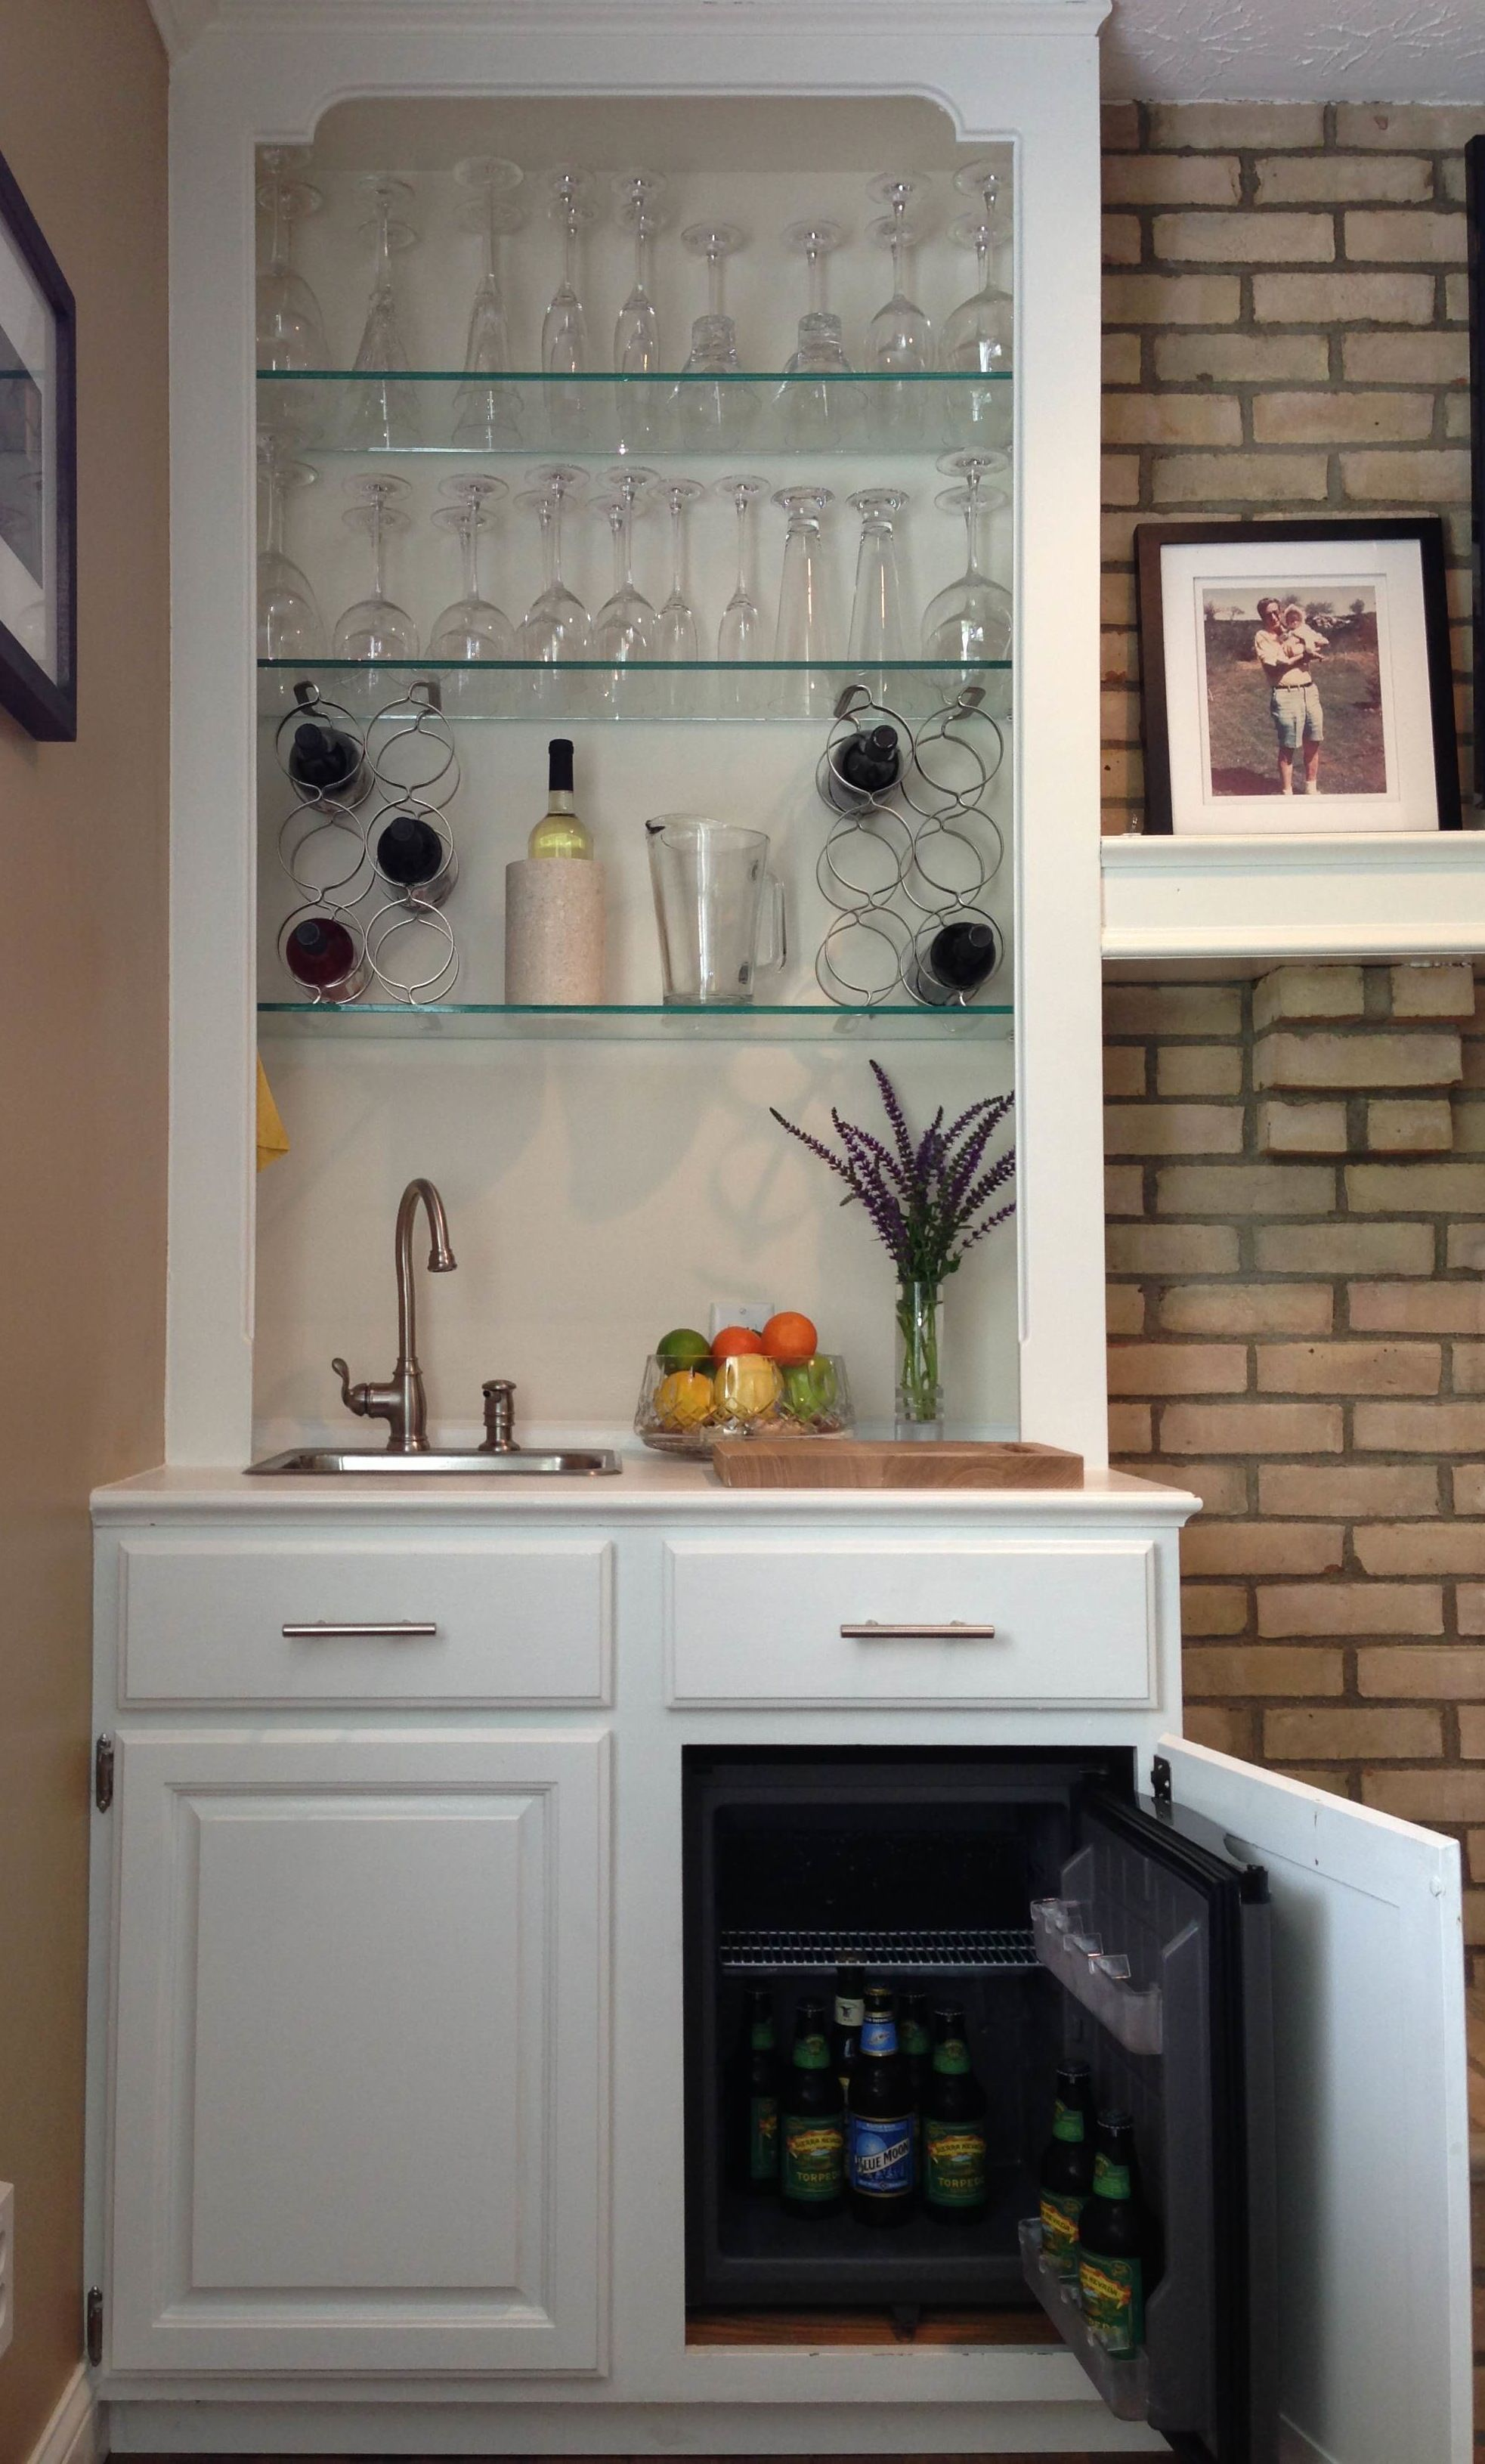 Built In Wet Bar   I Converted An Ugly, Mirror Backed Book Shelf Into This  Built In Wet Bar. The Key Pieces Are: Summit Appliance Mini Refrigerator*  (Home ...